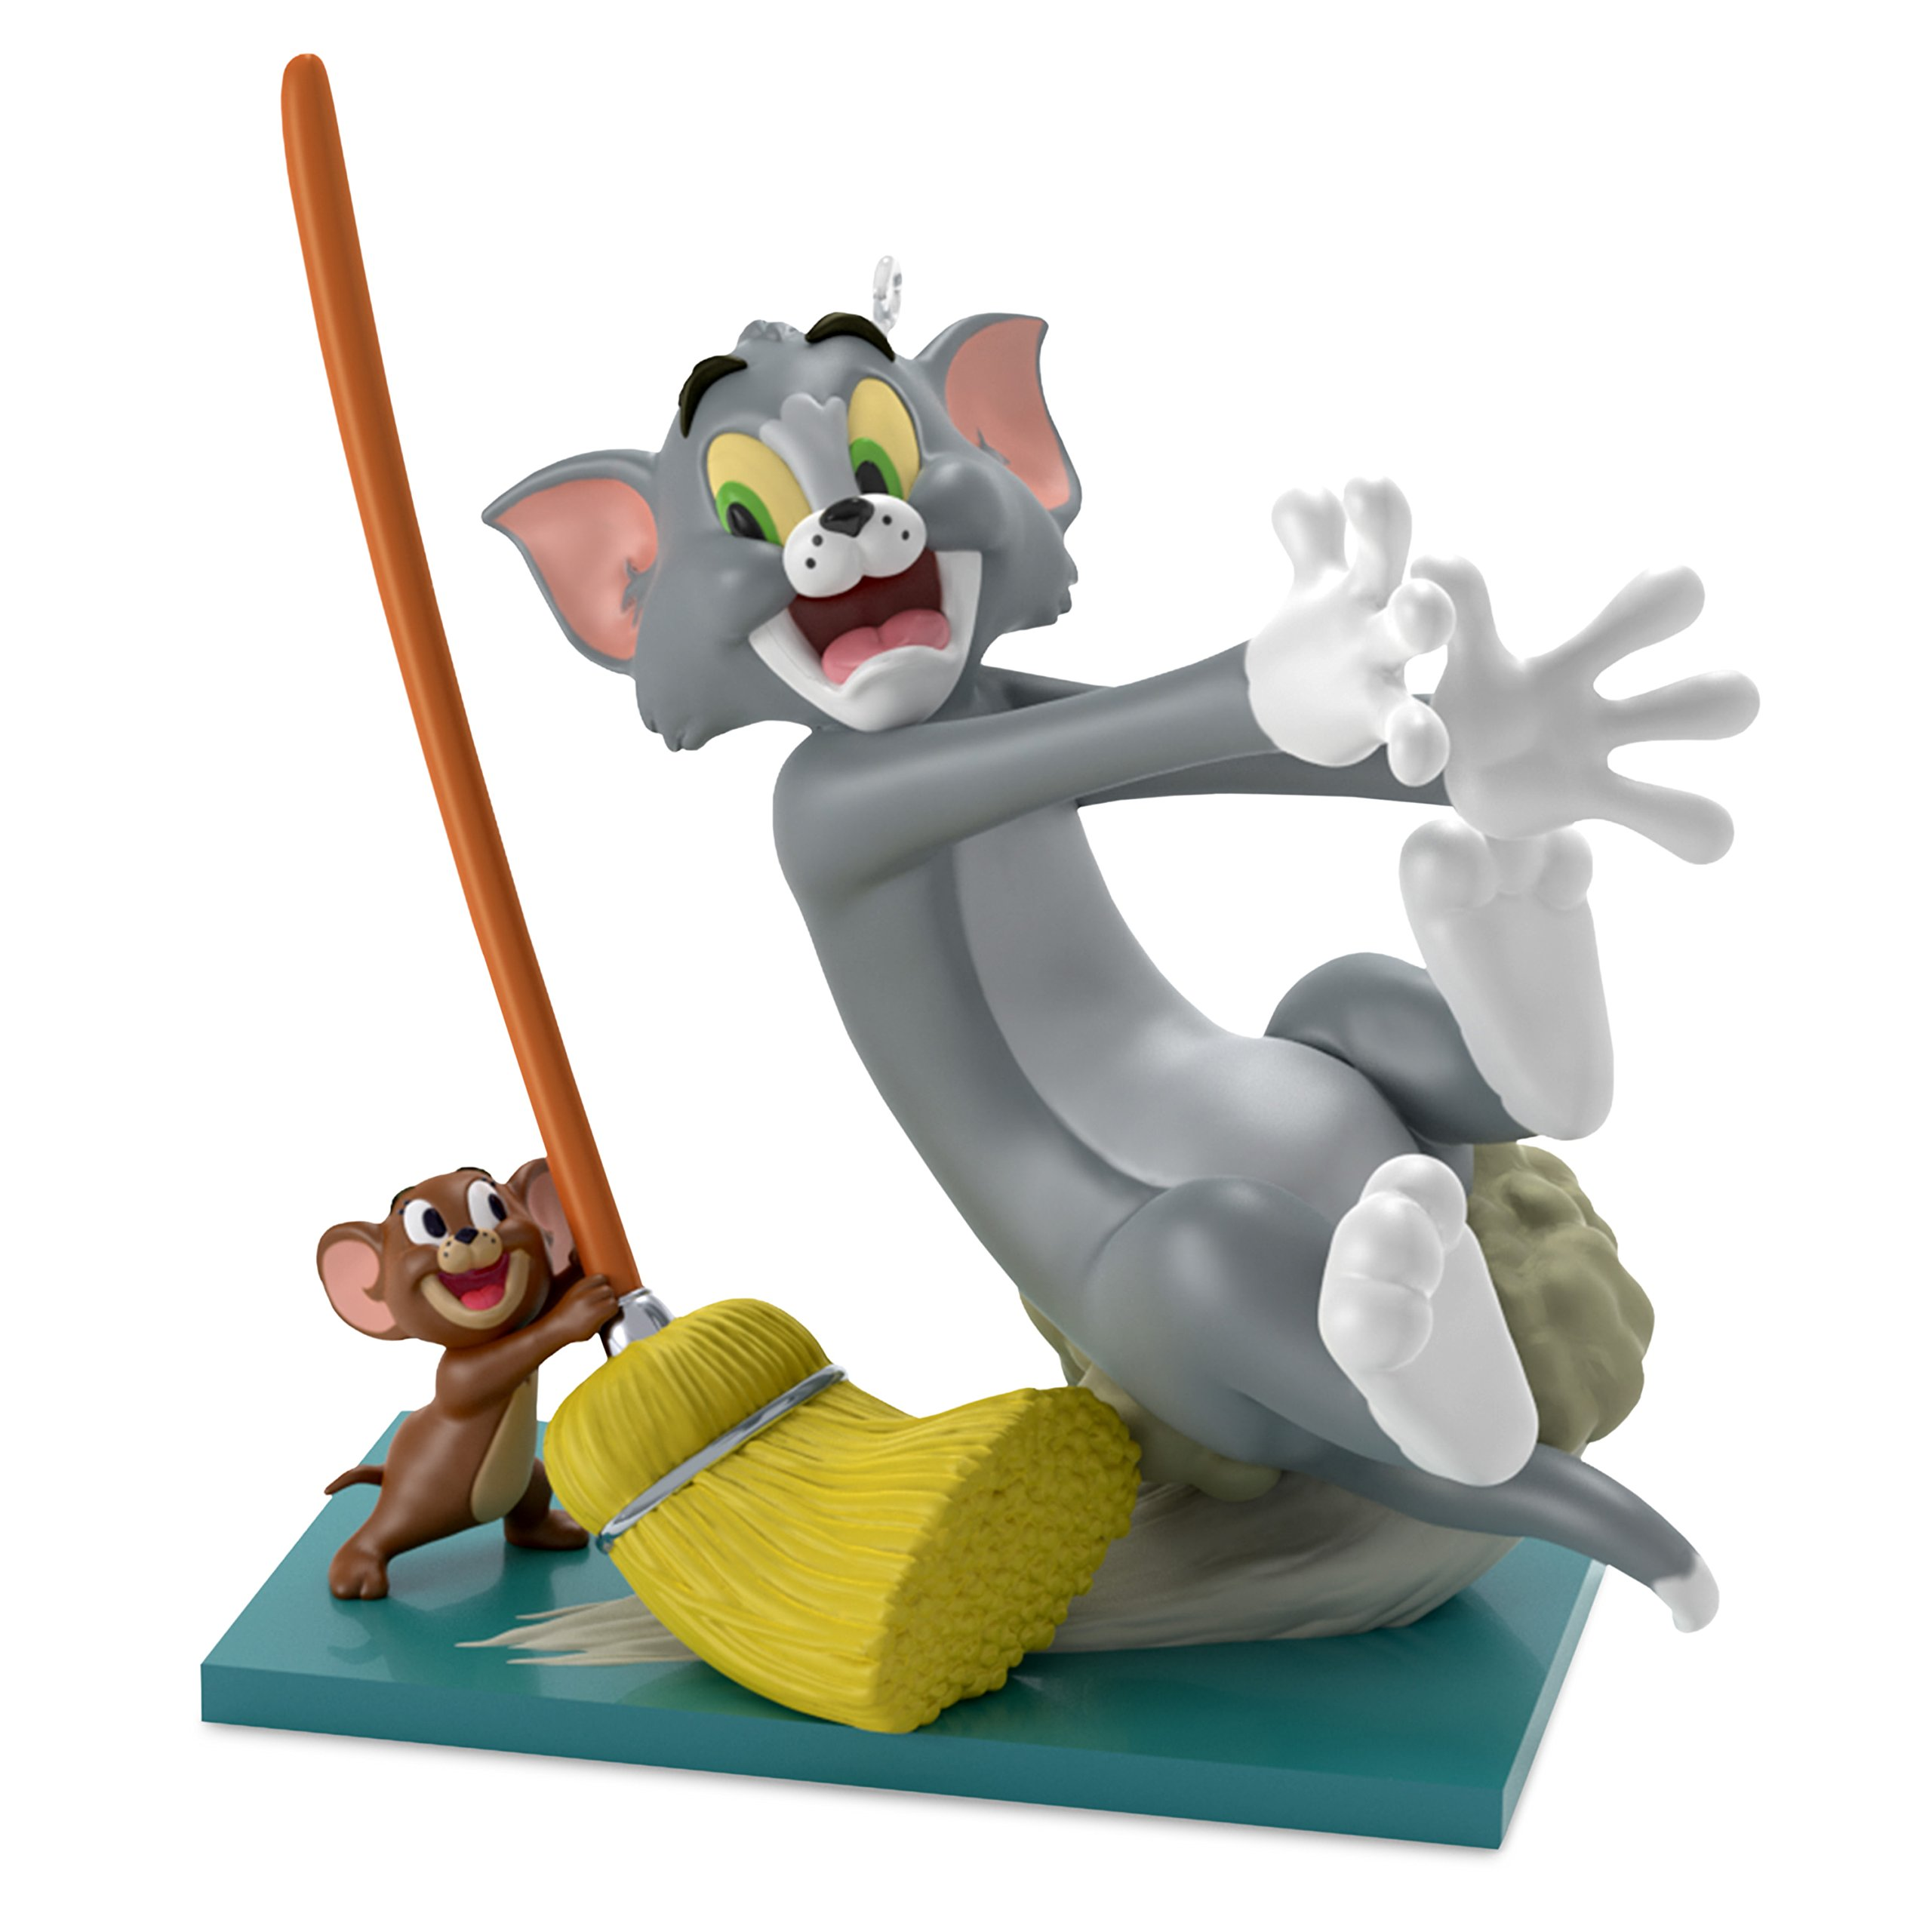 Hallmark Keepsake Christmas Ornament 2018 Year Dated, Tom and Jerry Mouse Cleaning